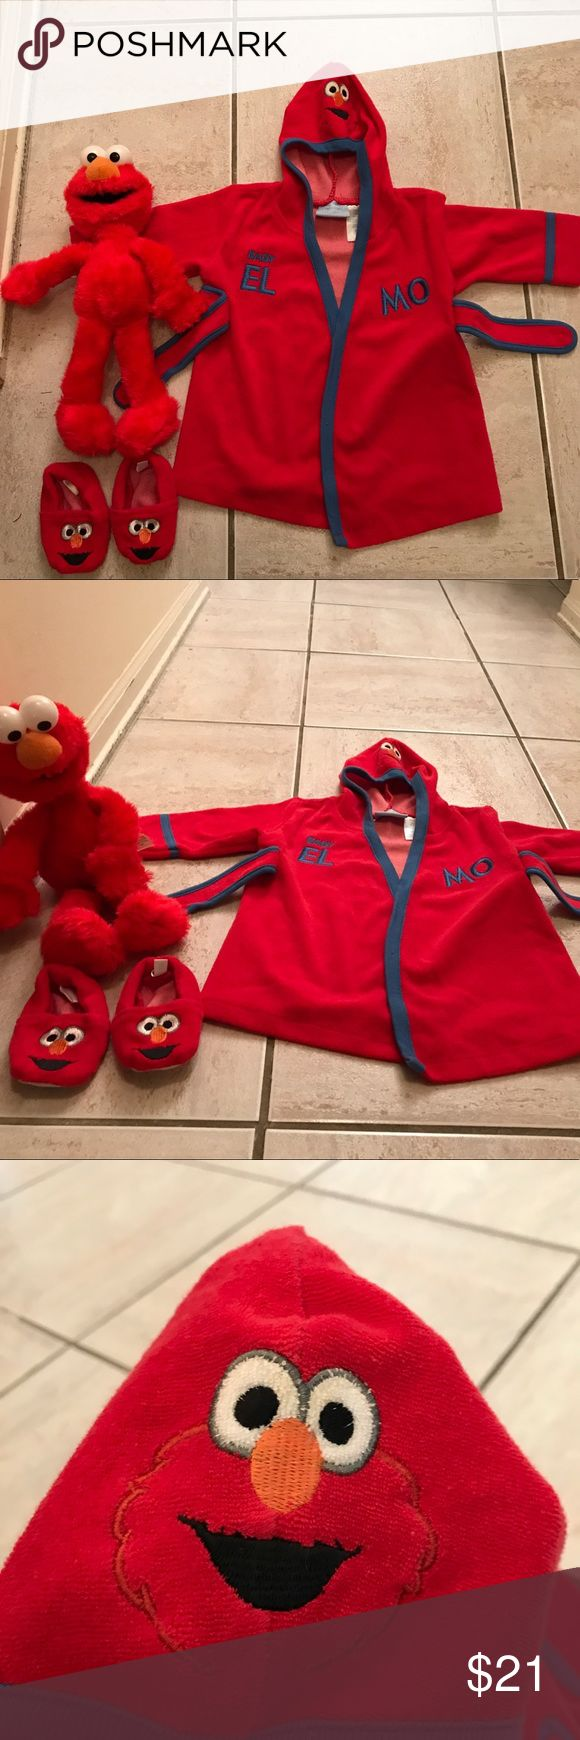 Best 25 elmo doll ideas on pinterest creepy stuff spooky infant elmo robe and slippers bankloansurffo Gallery